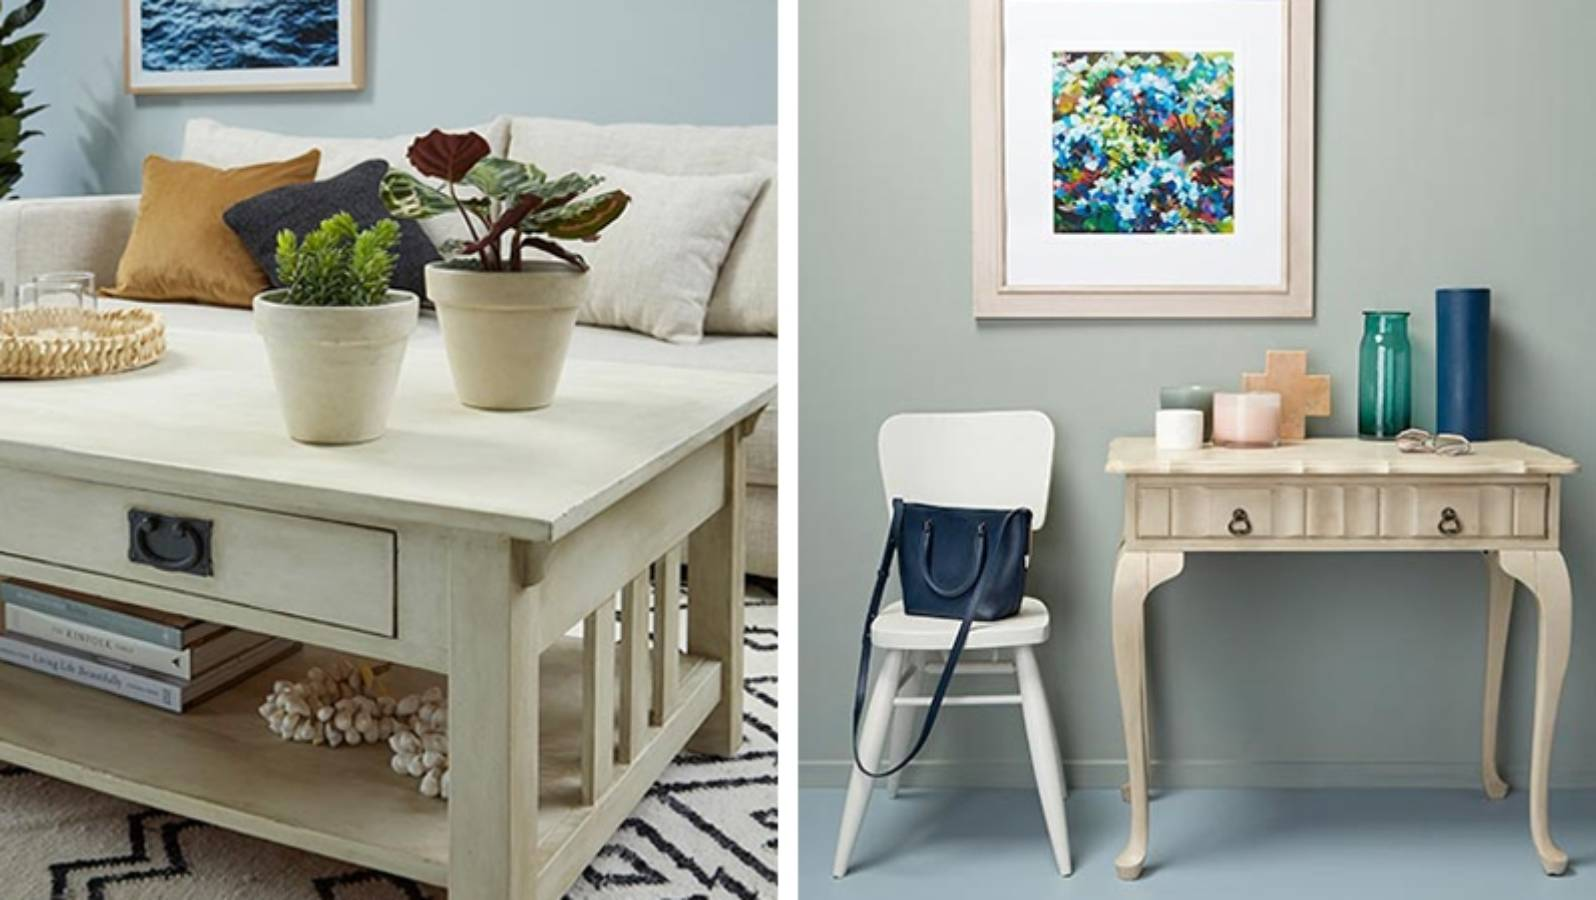 How to upcycle in your home